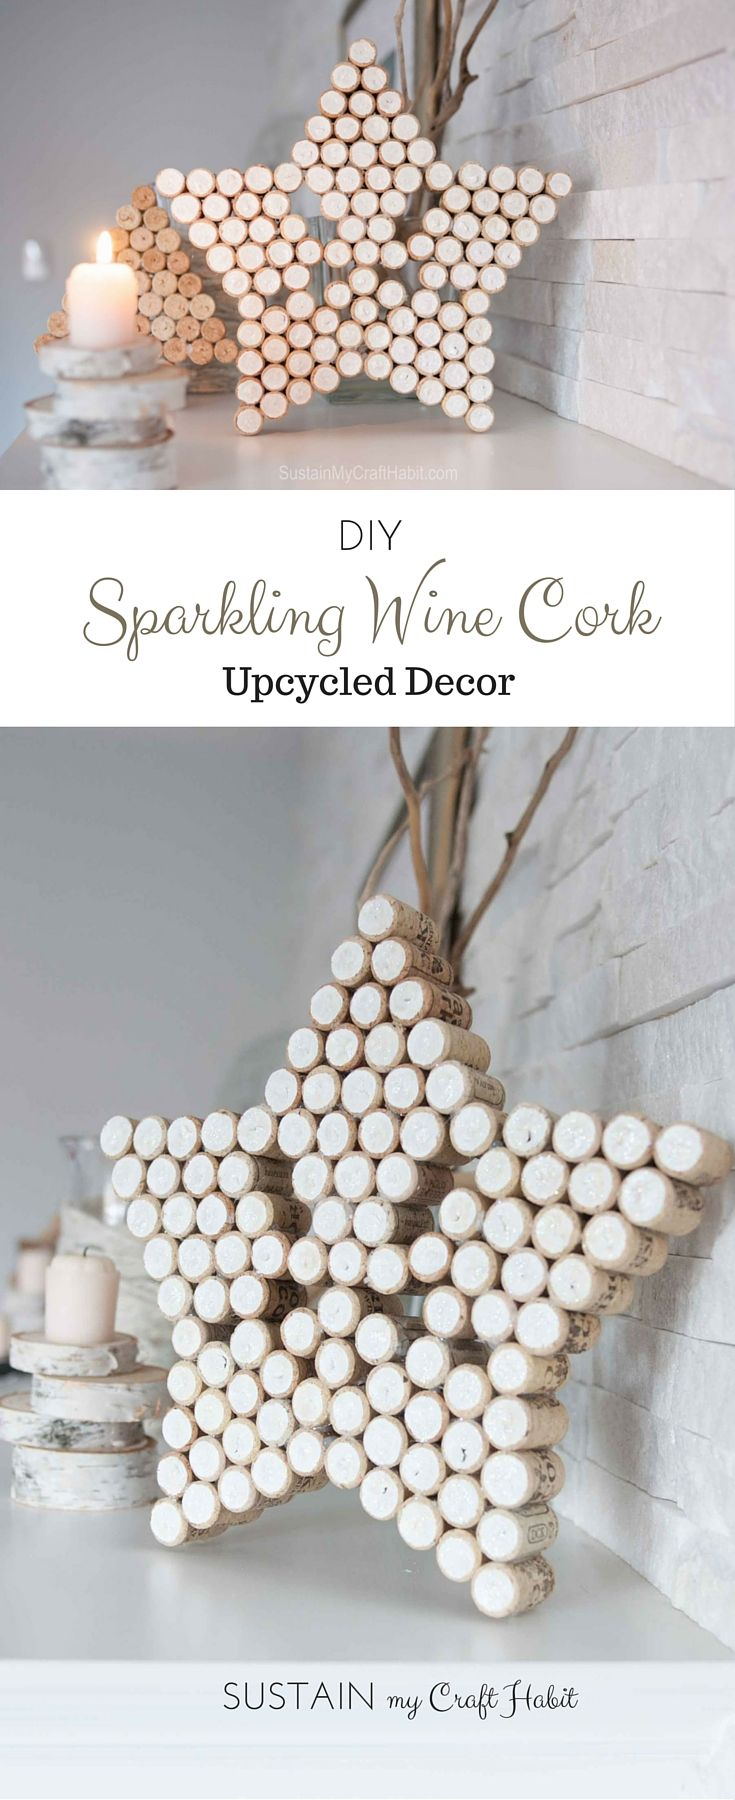 490 best put a cork in it! images on pinterest | wine cork crafts